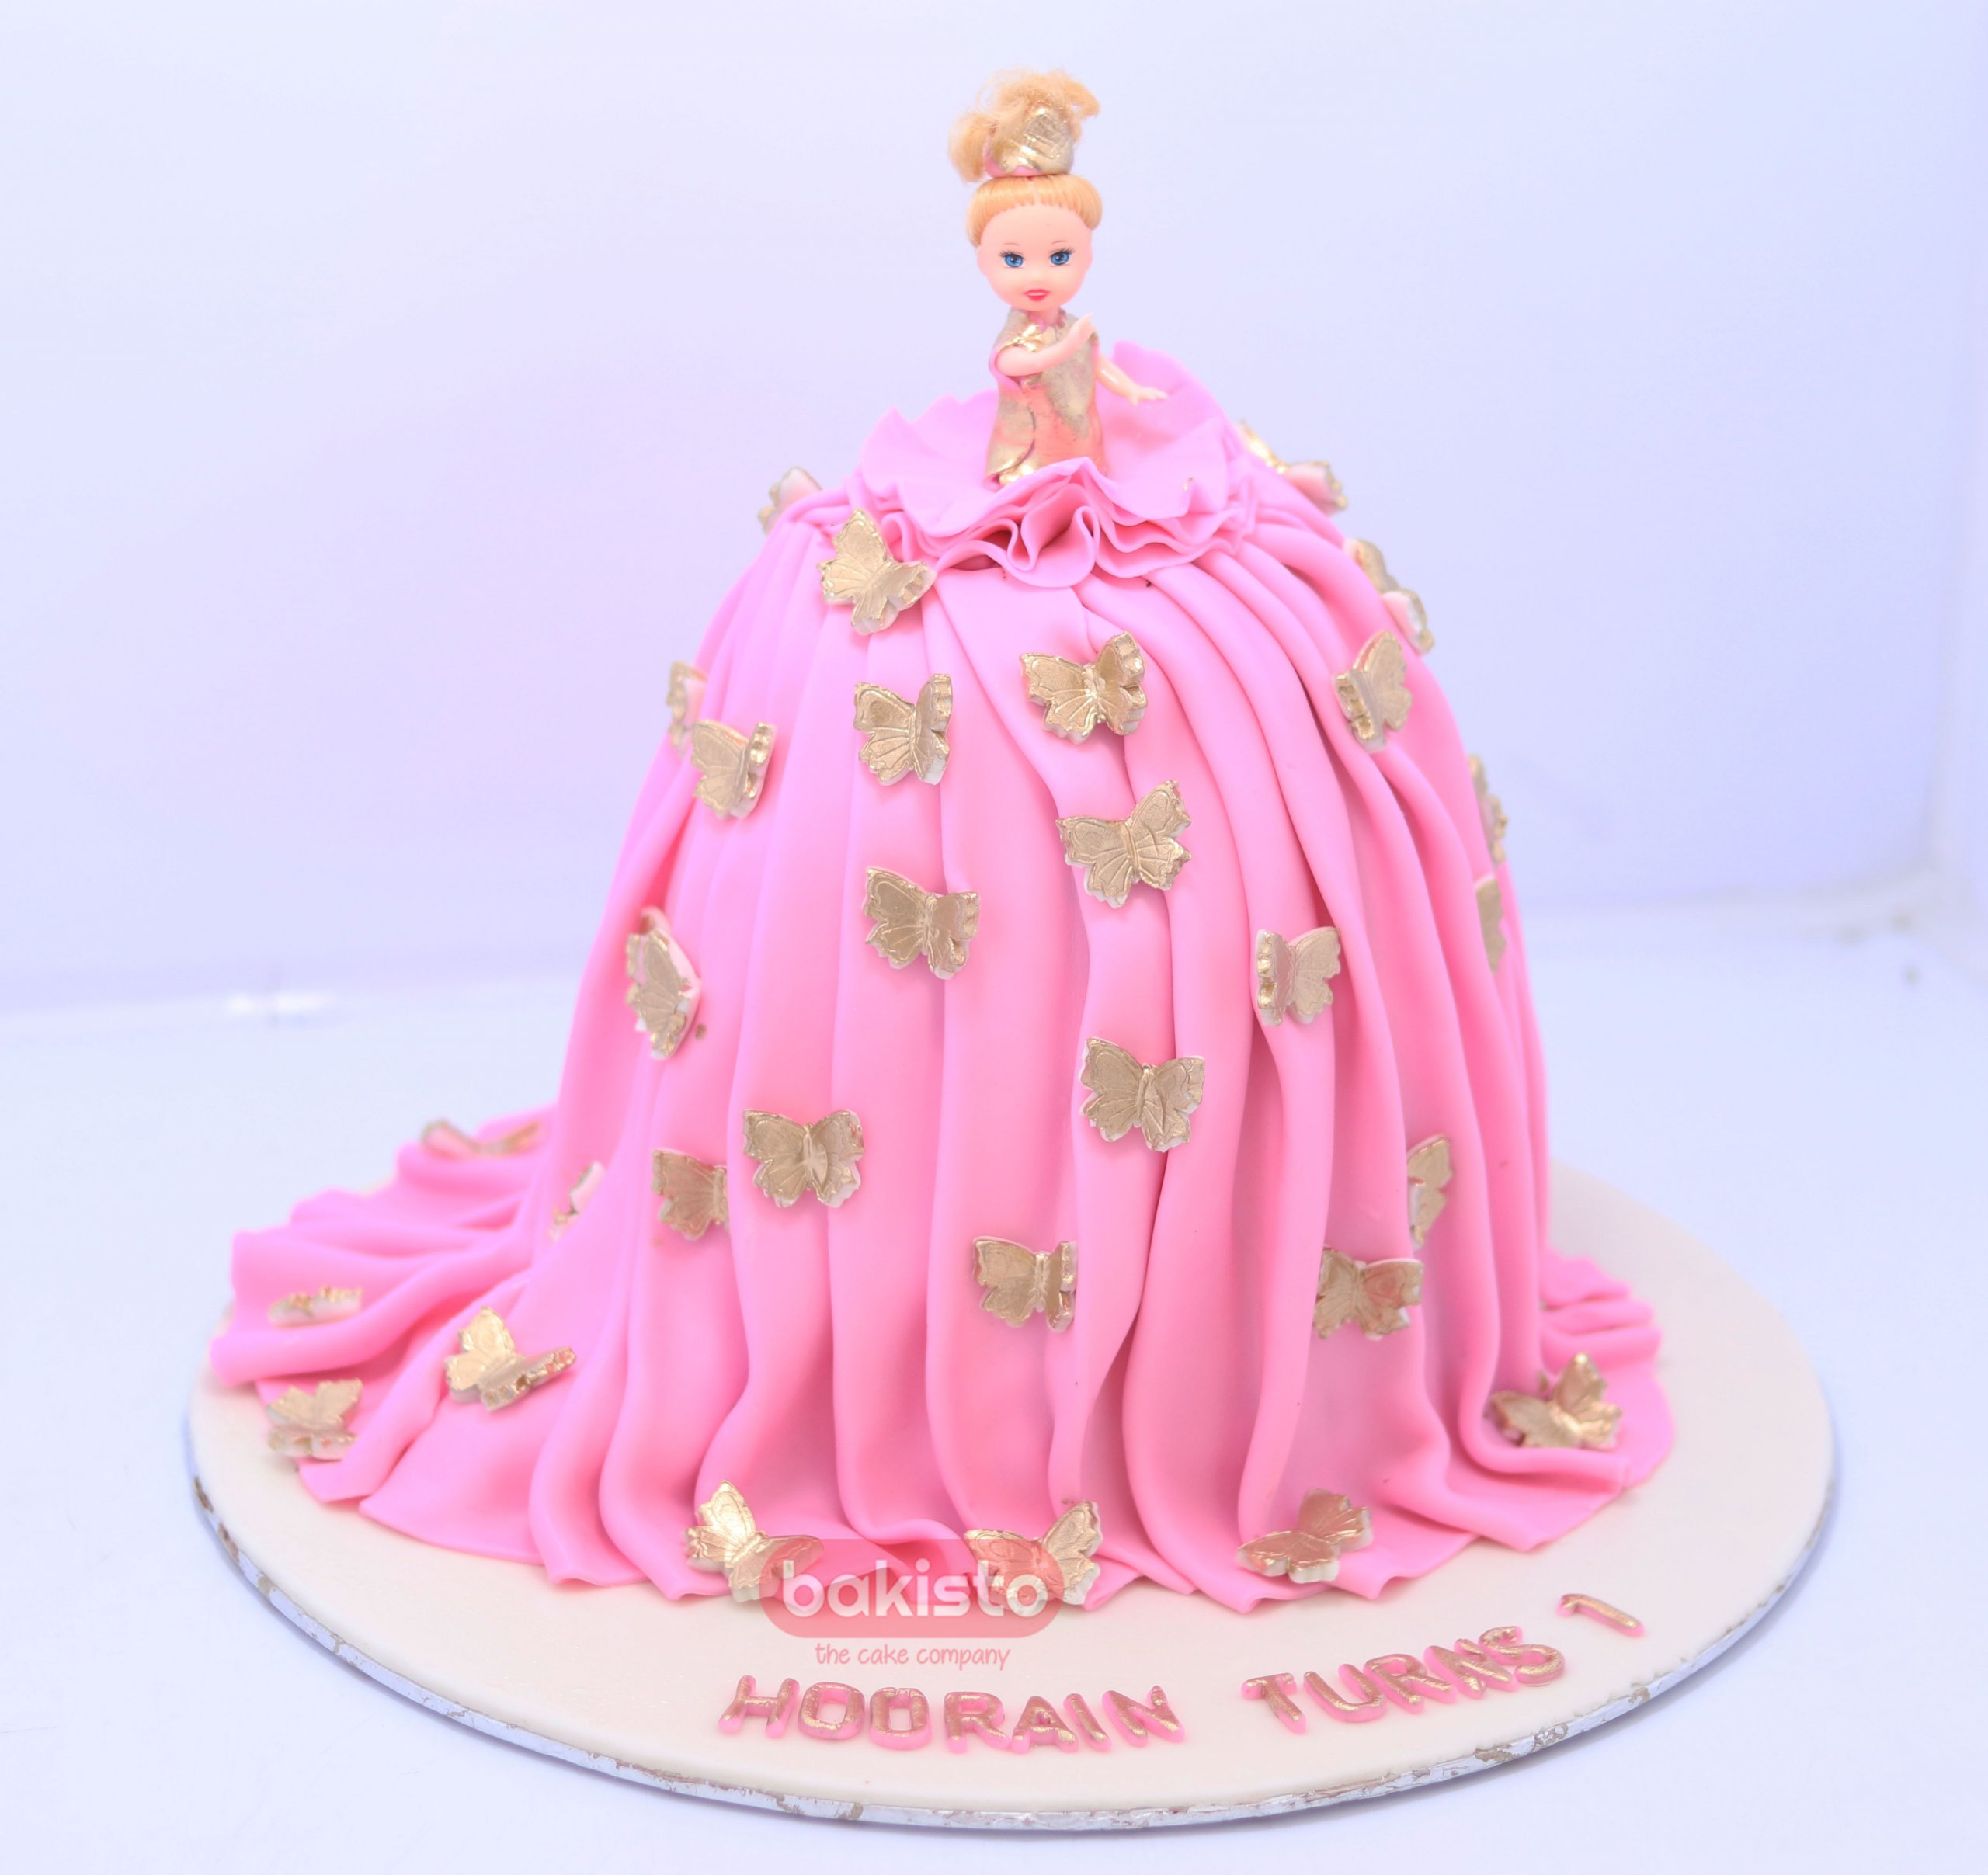 Groovy Barbie Birthday Cake Now Available At Your Doorsteps In Lahore Funny Birthday Cards Online Alyptdamsfinfo